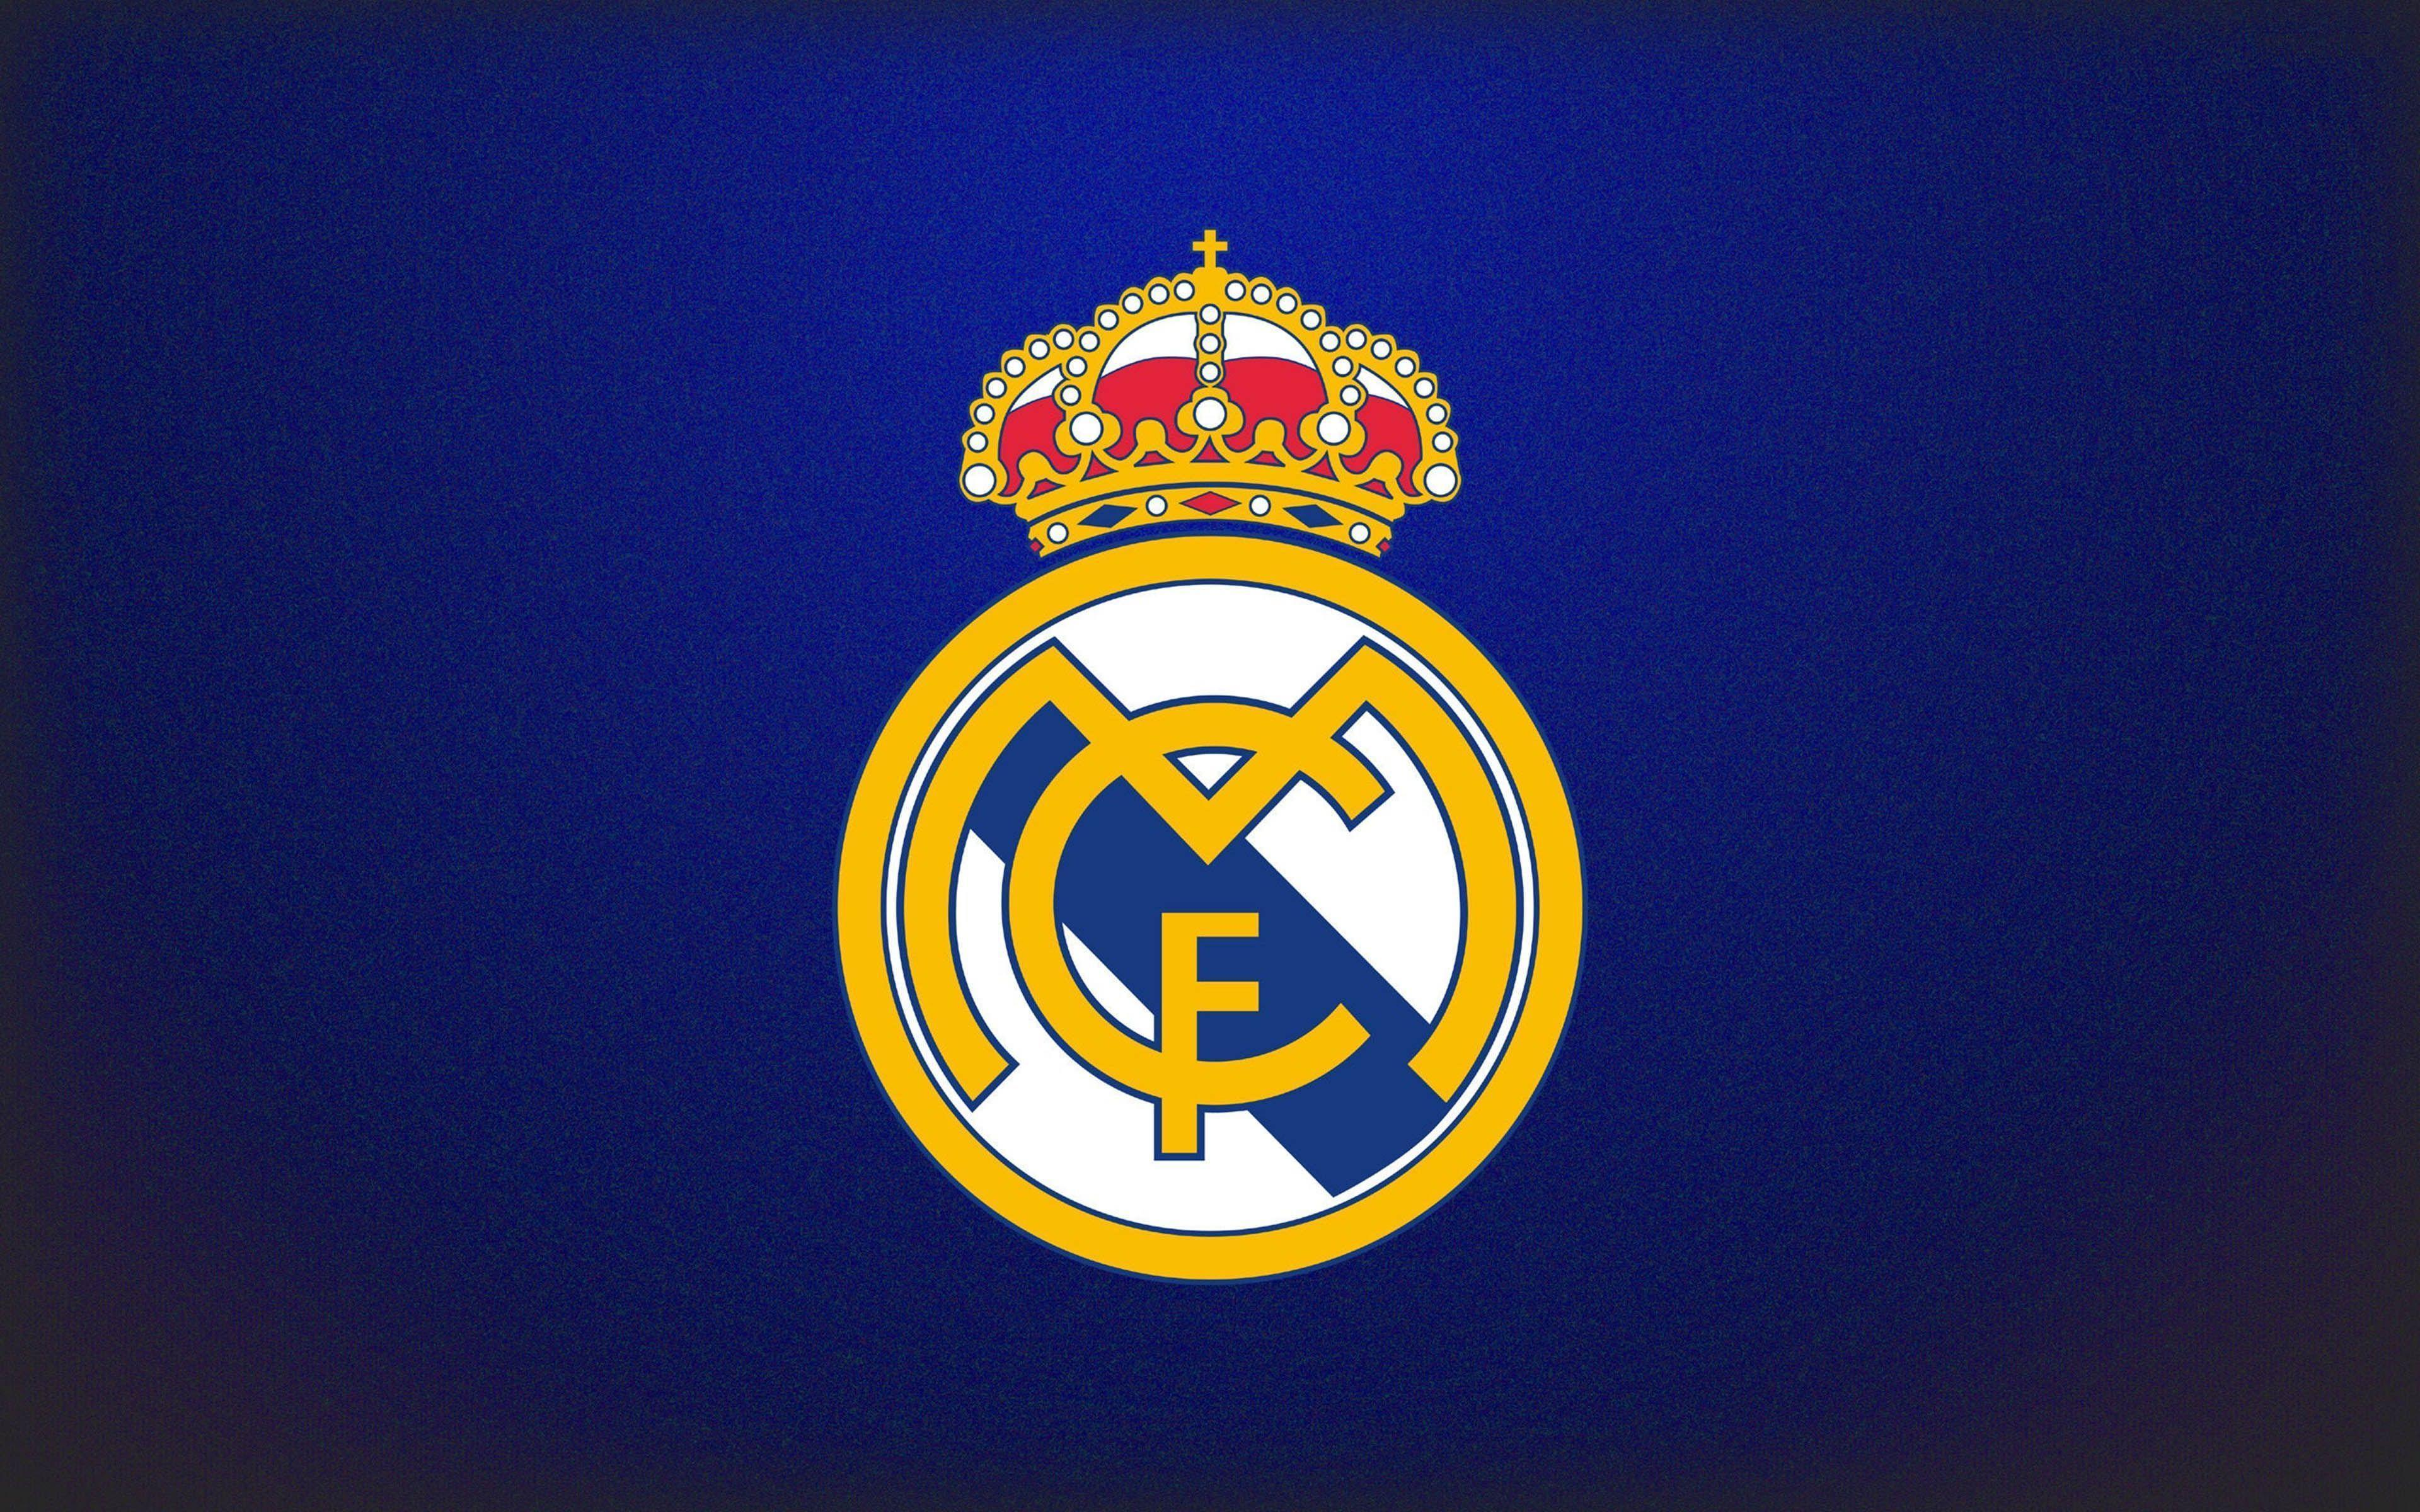 Real Madrid Logo Blue Background Wallpaper | WallpapersByte